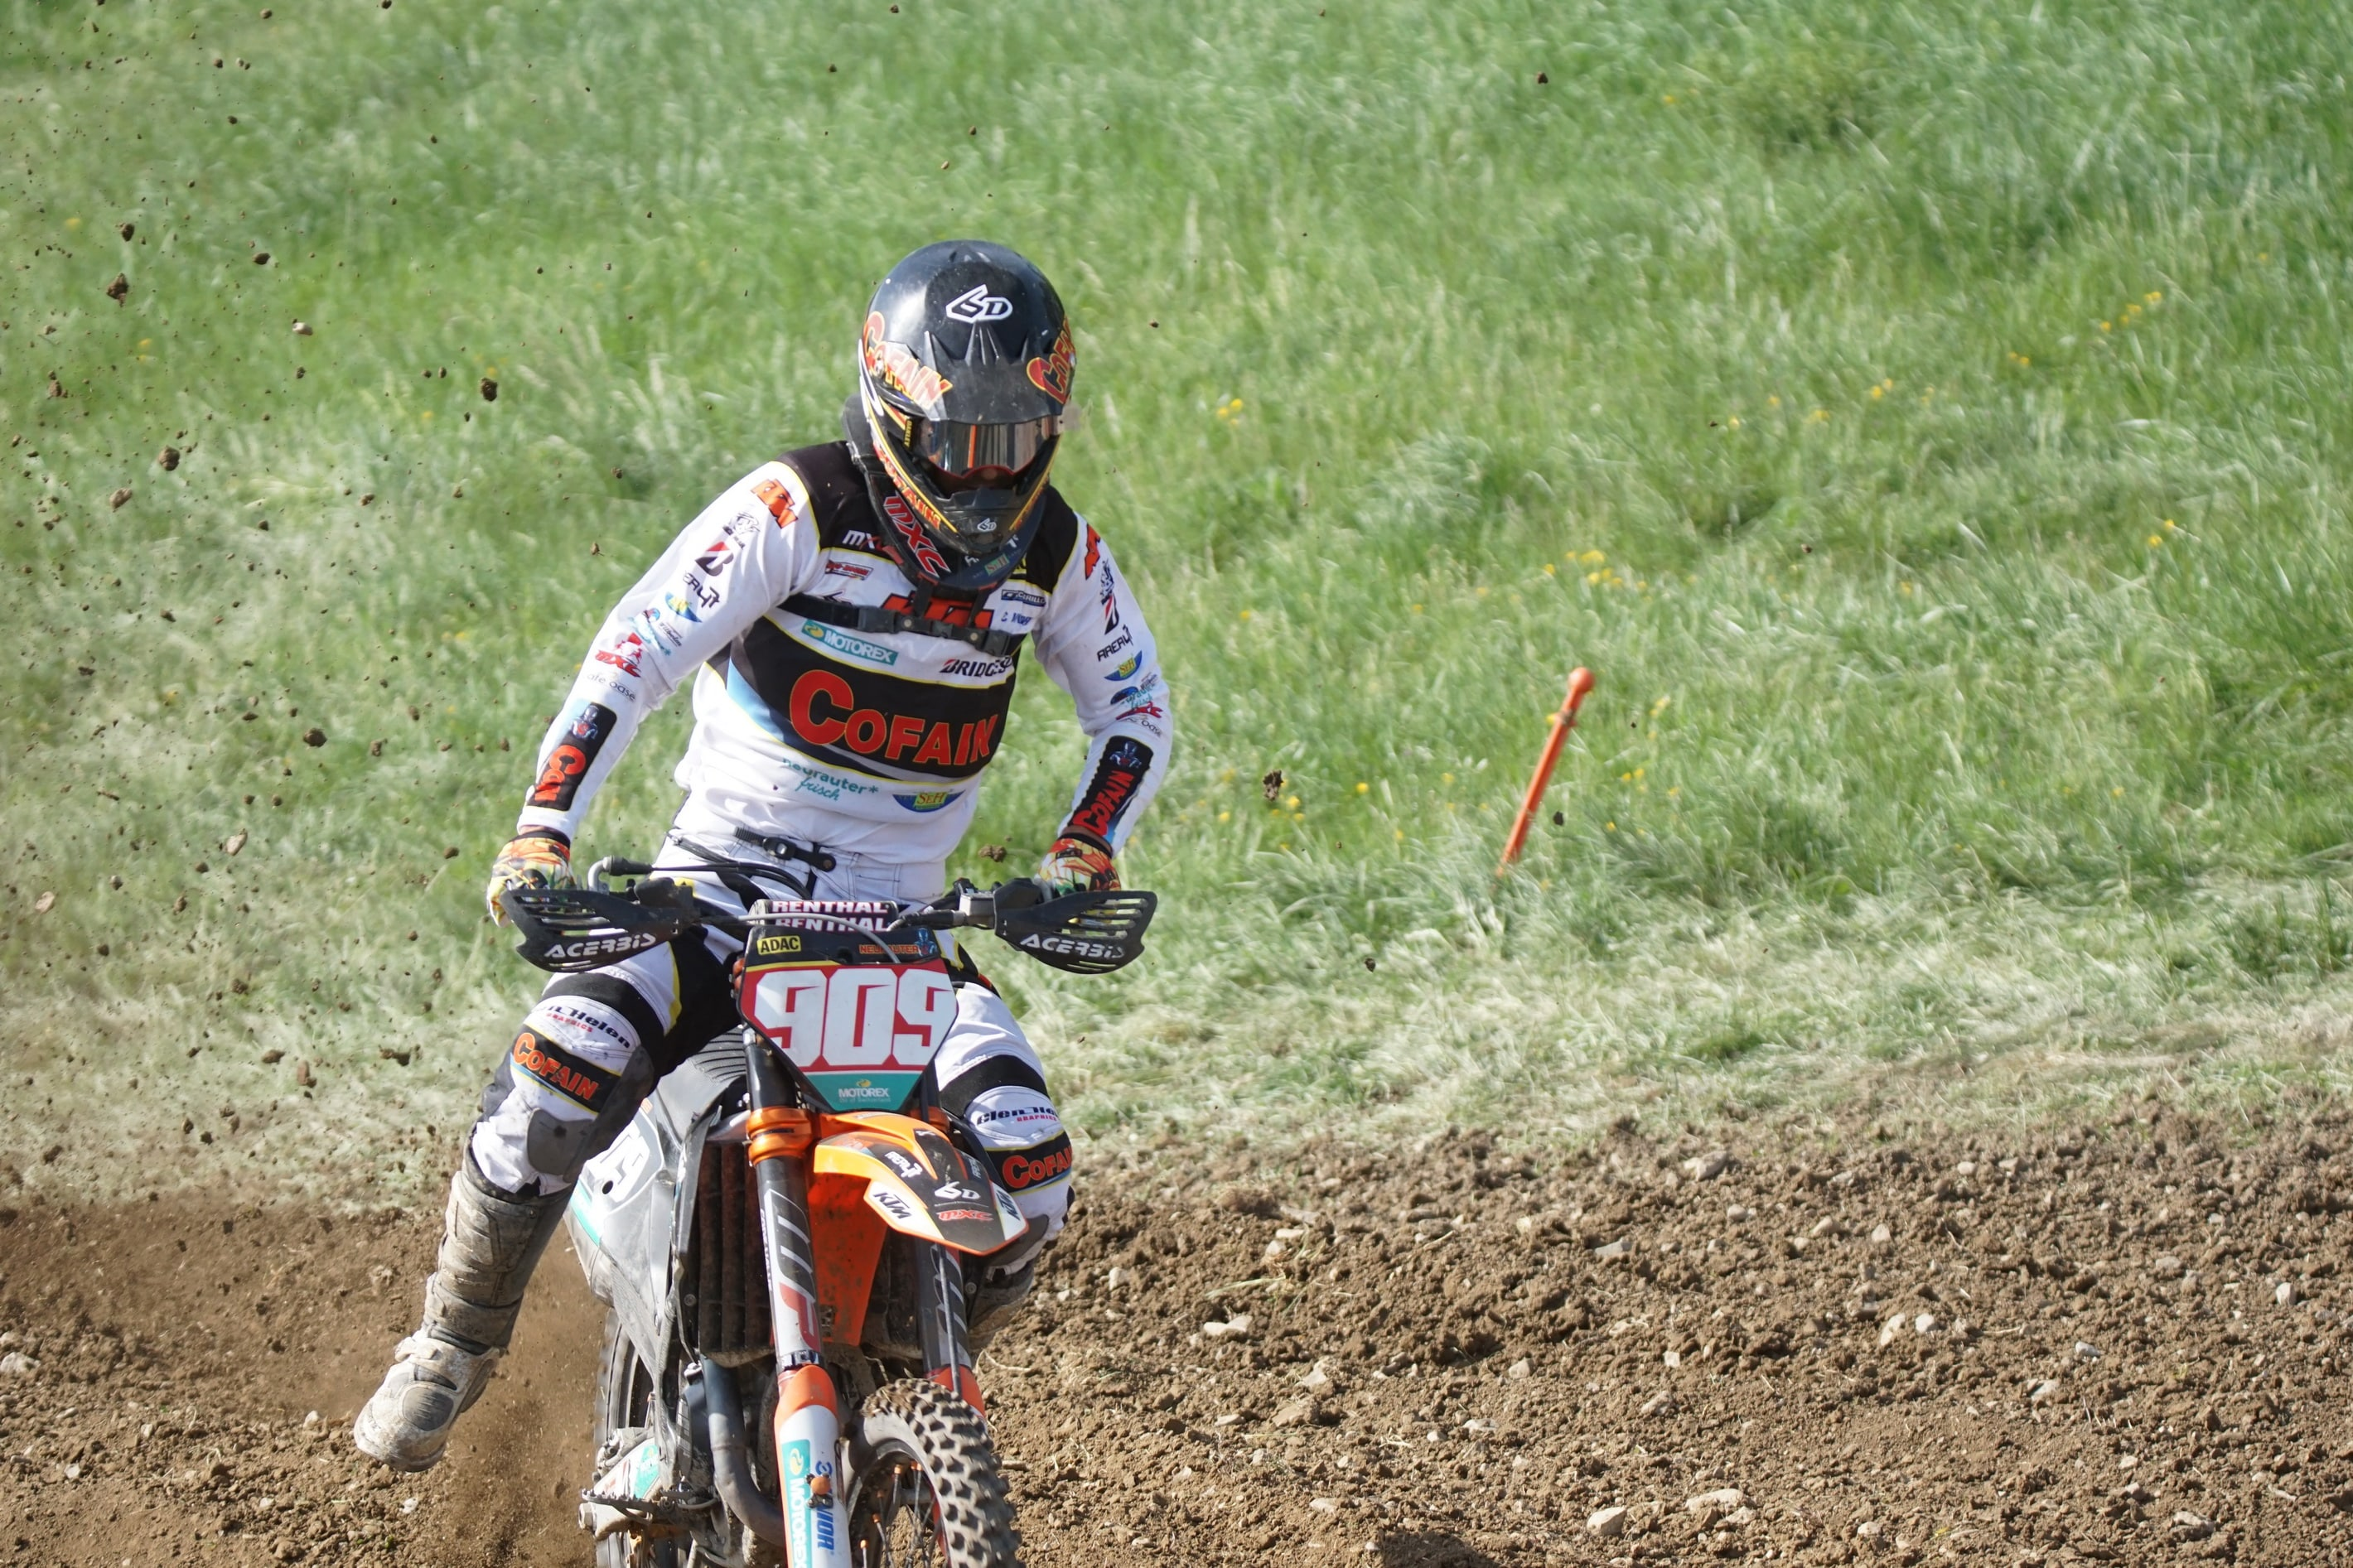 DSC 886_Moto Cross Sittendorf Teil1 am 29.04.2018